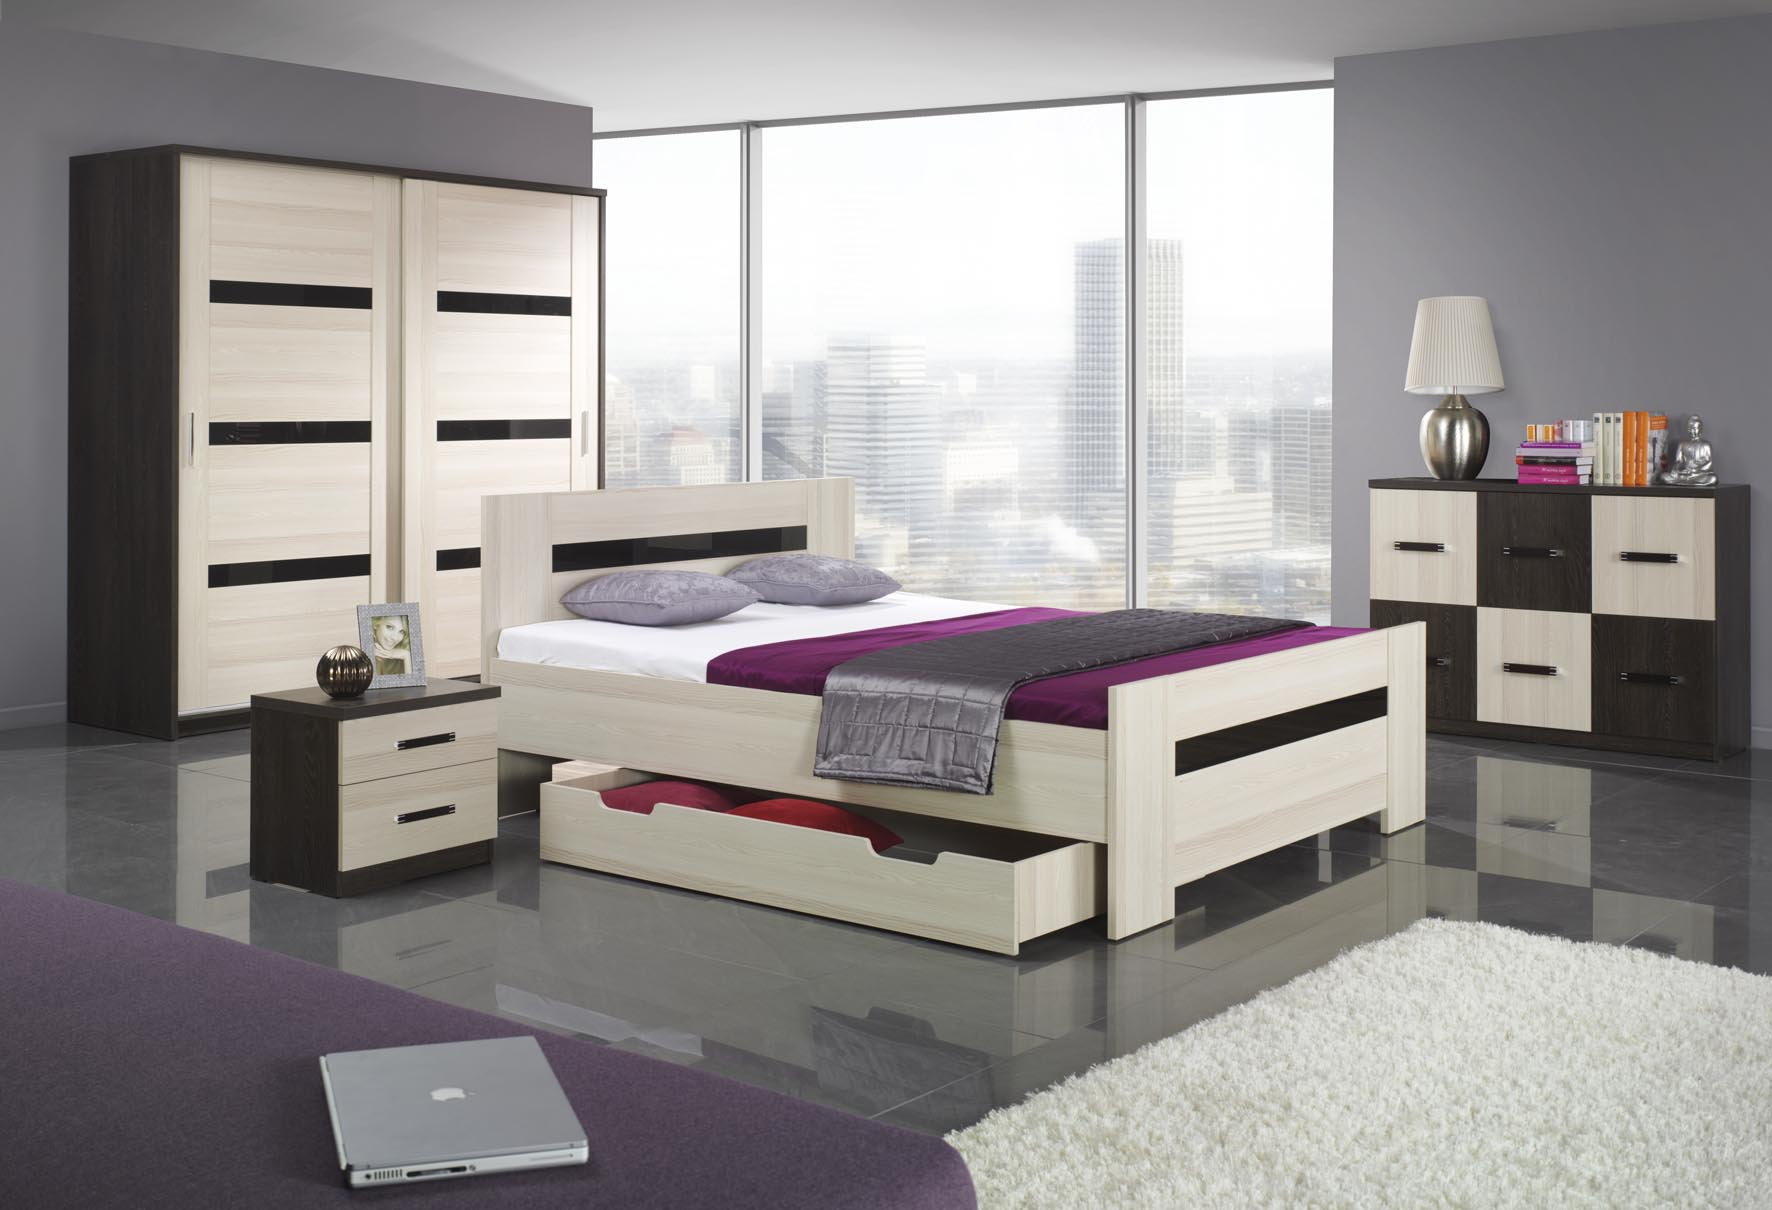 High Quality Bedroom Furniture Sets Without Bed Photo   2